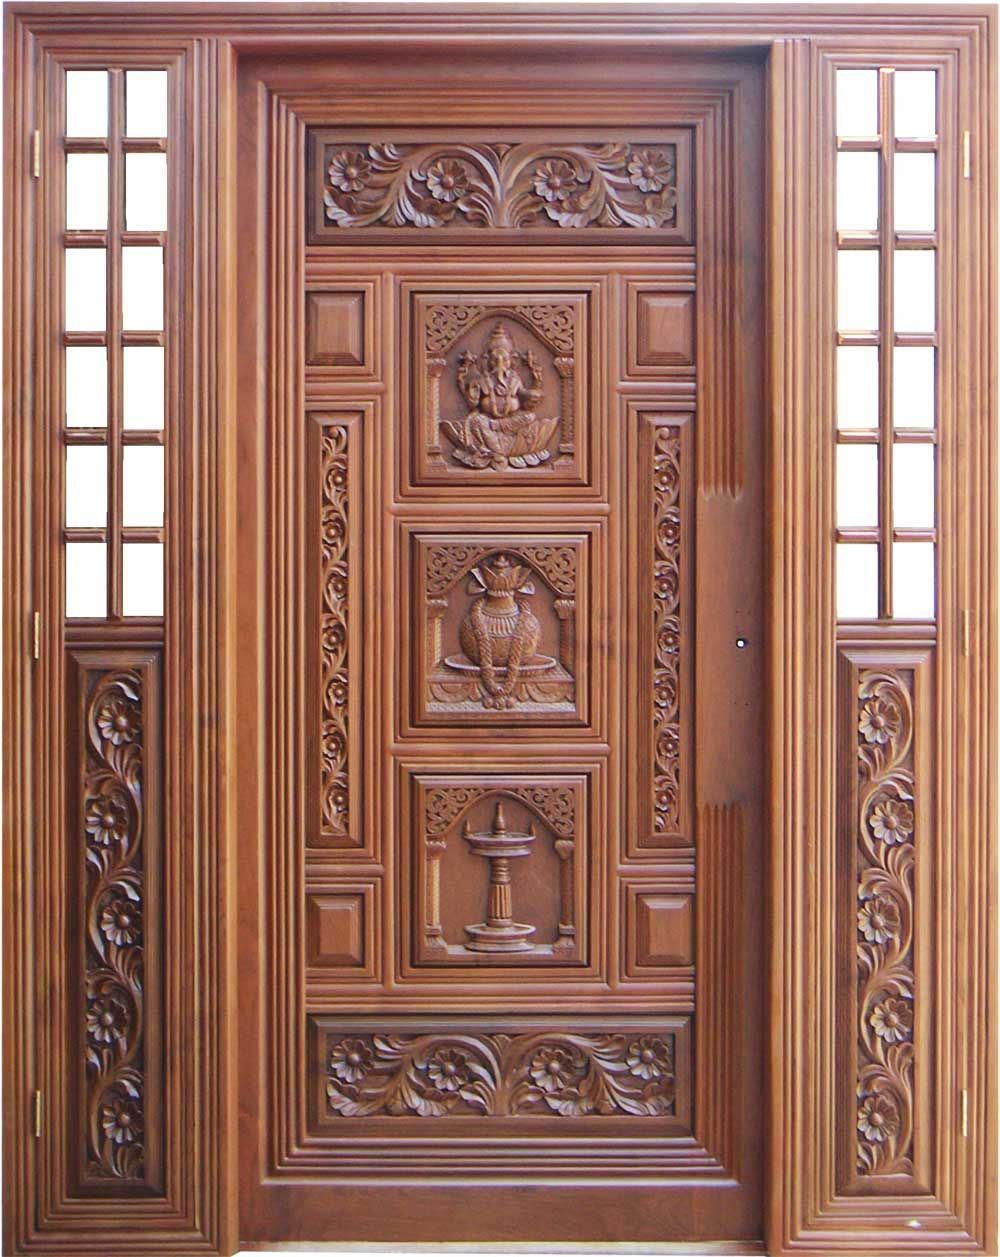 Solid Wood Doors For Sale Custom Internal Doors Buy Exterior Door 20190412 Mujahir Ali 9891935 Wooden Door Design Door Design Wood Wooden Main Door Design